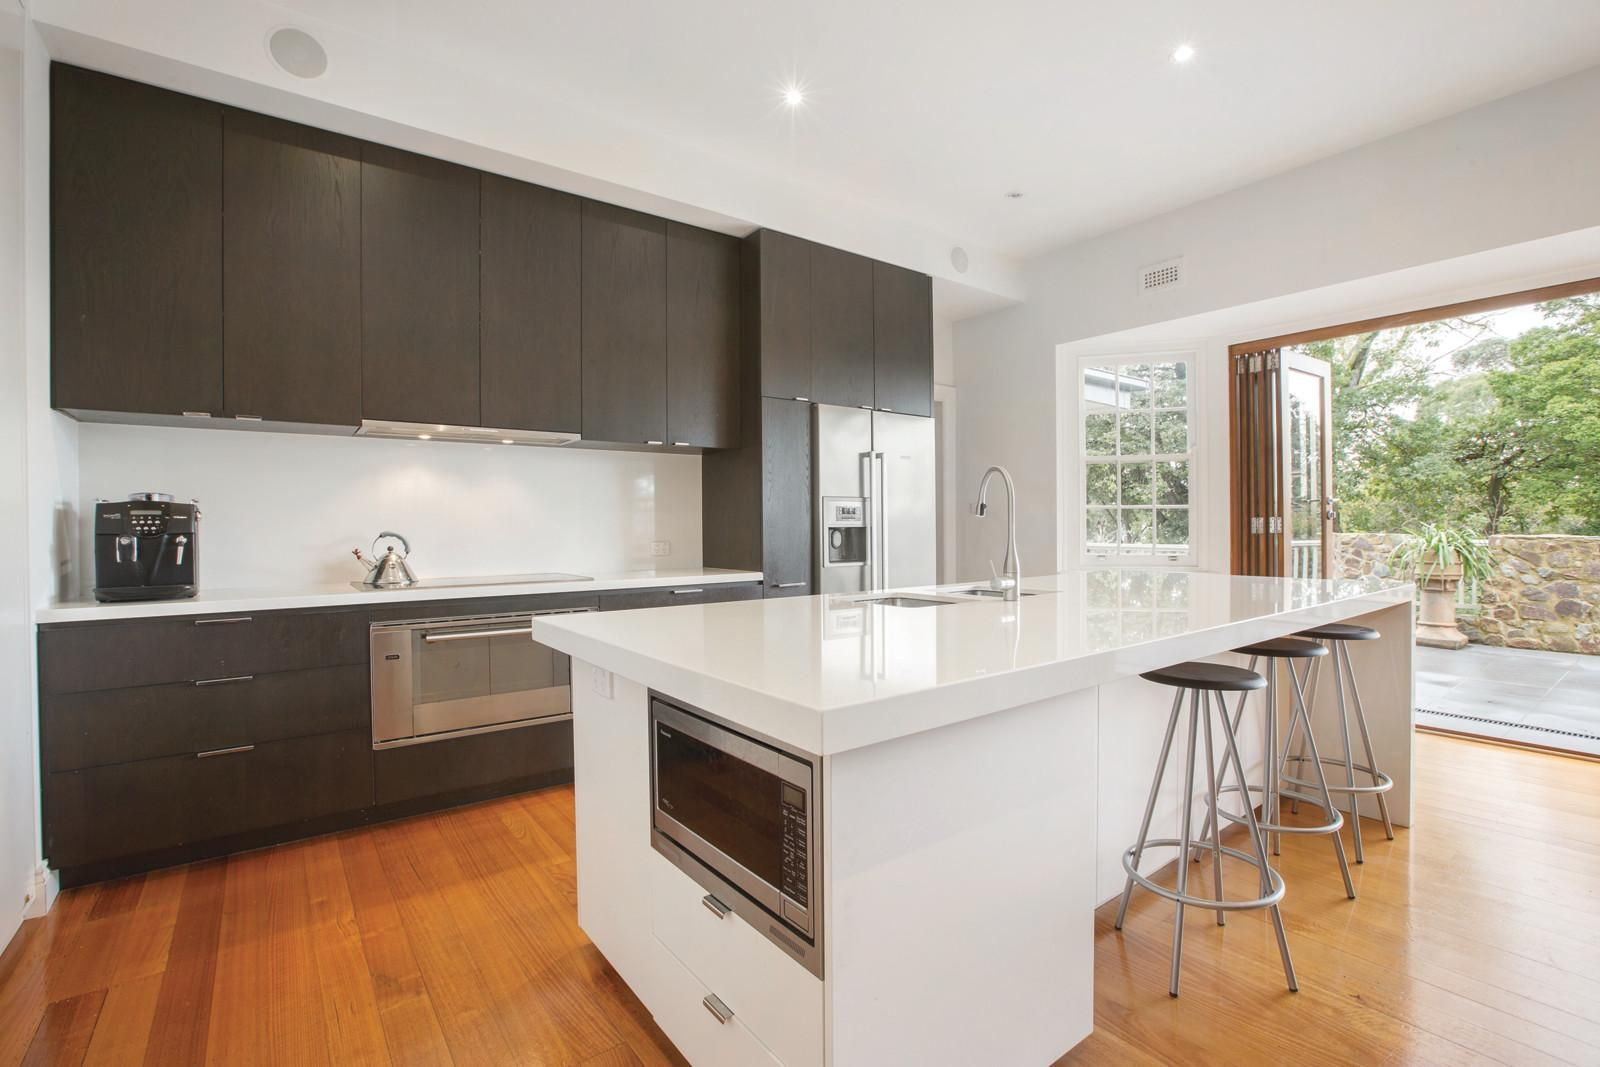 277 Union Road, BALWYN Marshall White (With images